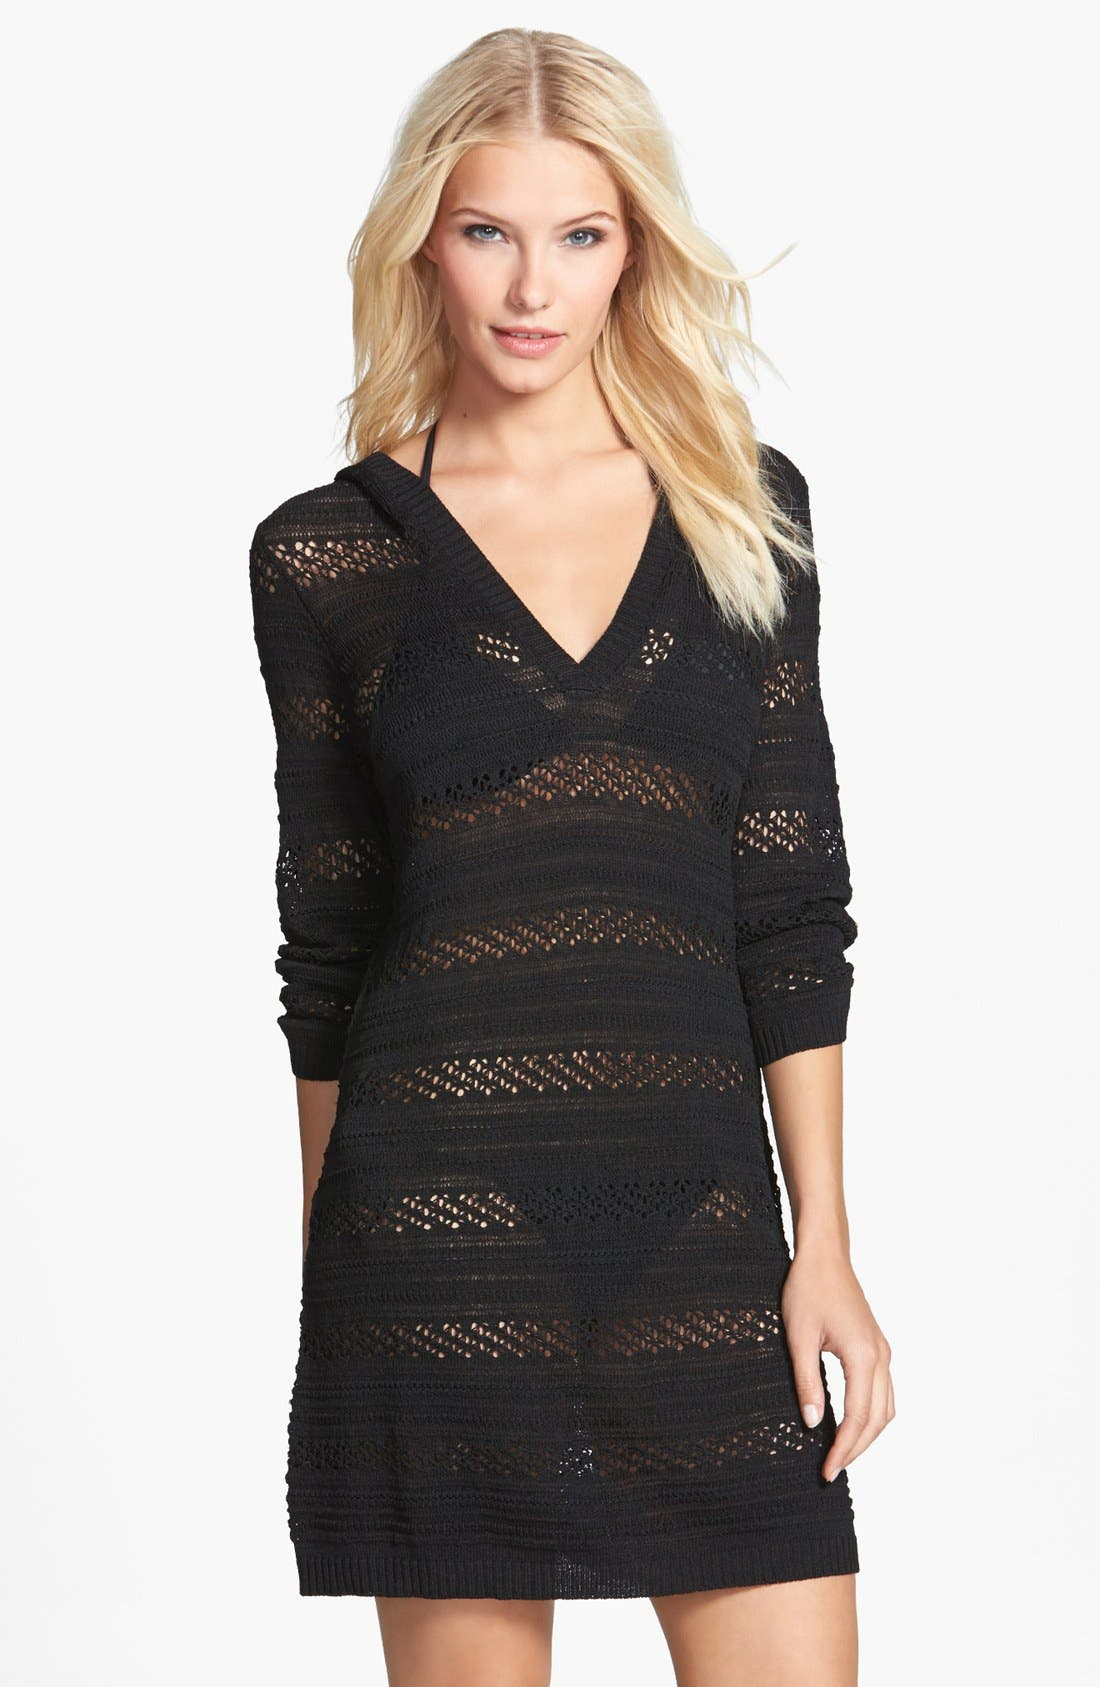 Alternate Image 1 Selected - Tommy Bahama Hooded Pointelle Knit Cover-Up